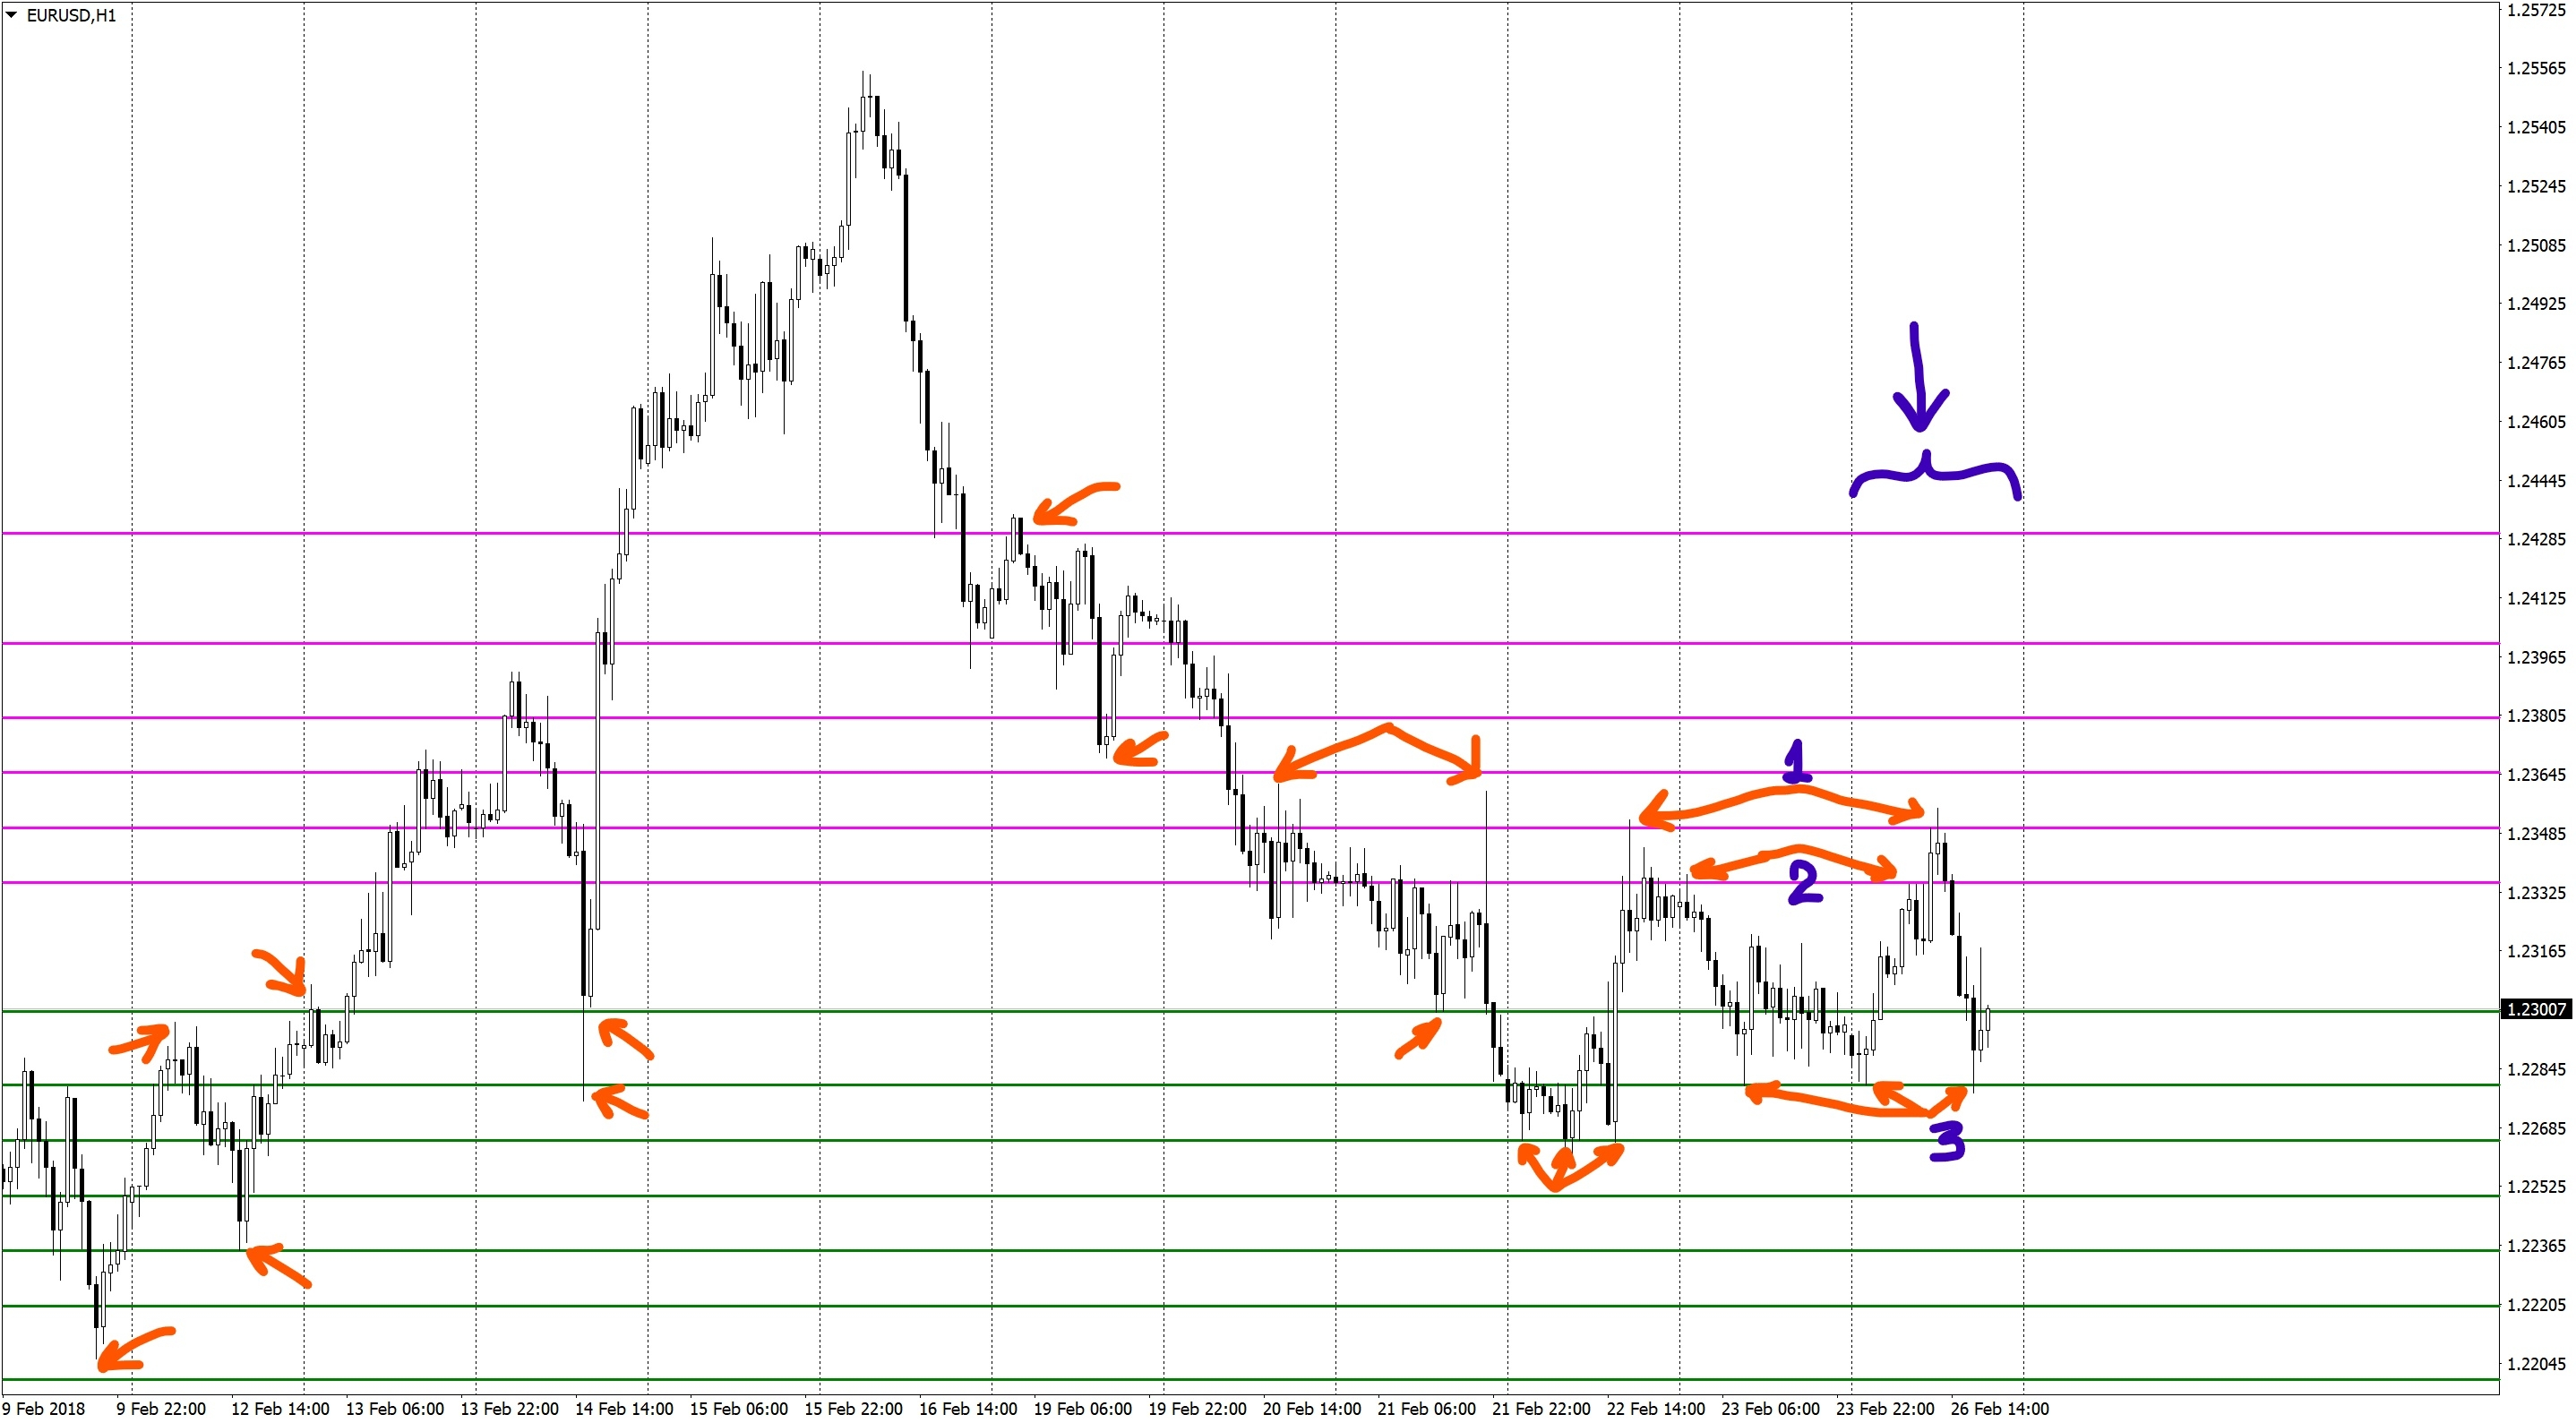 Support-resistance levels at EURUSD H1